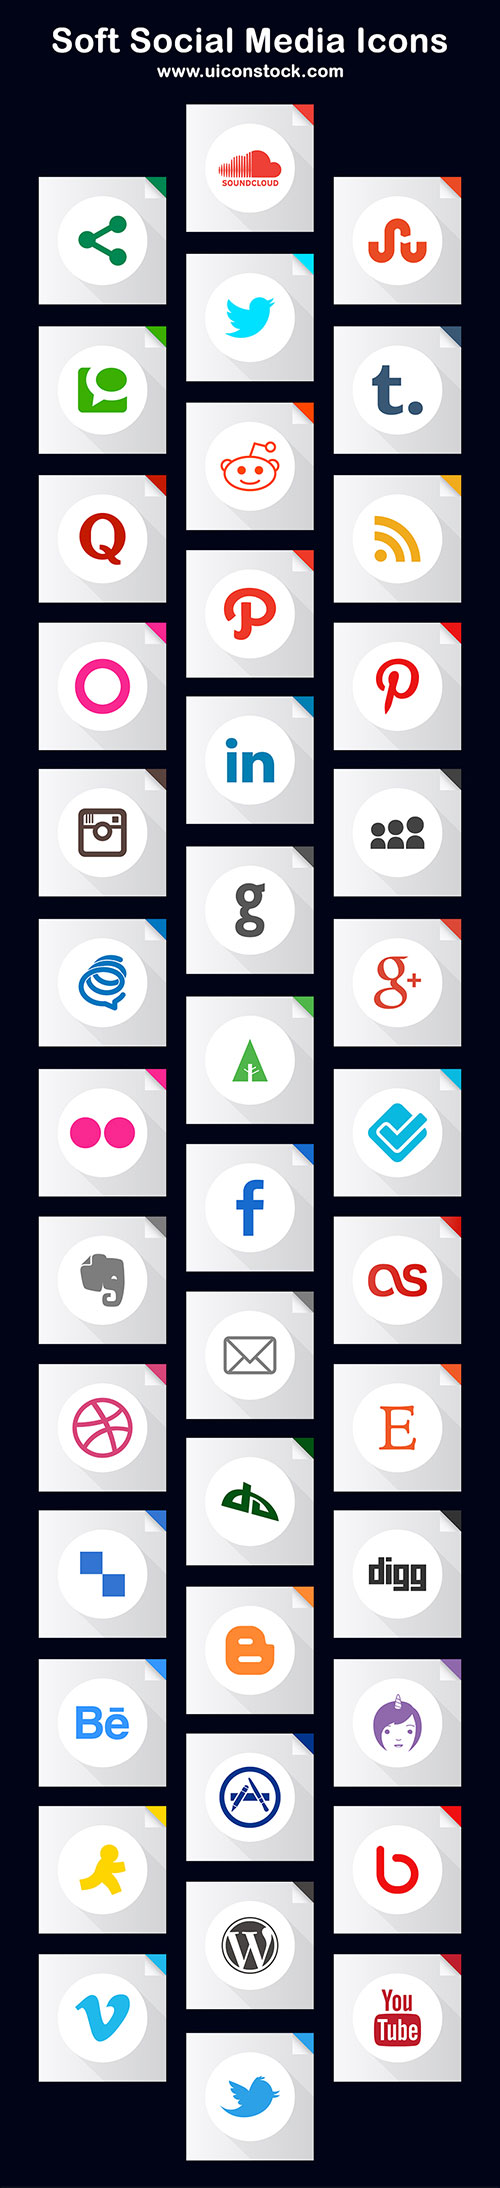 free-soft-social-media-icons-ai-pngs